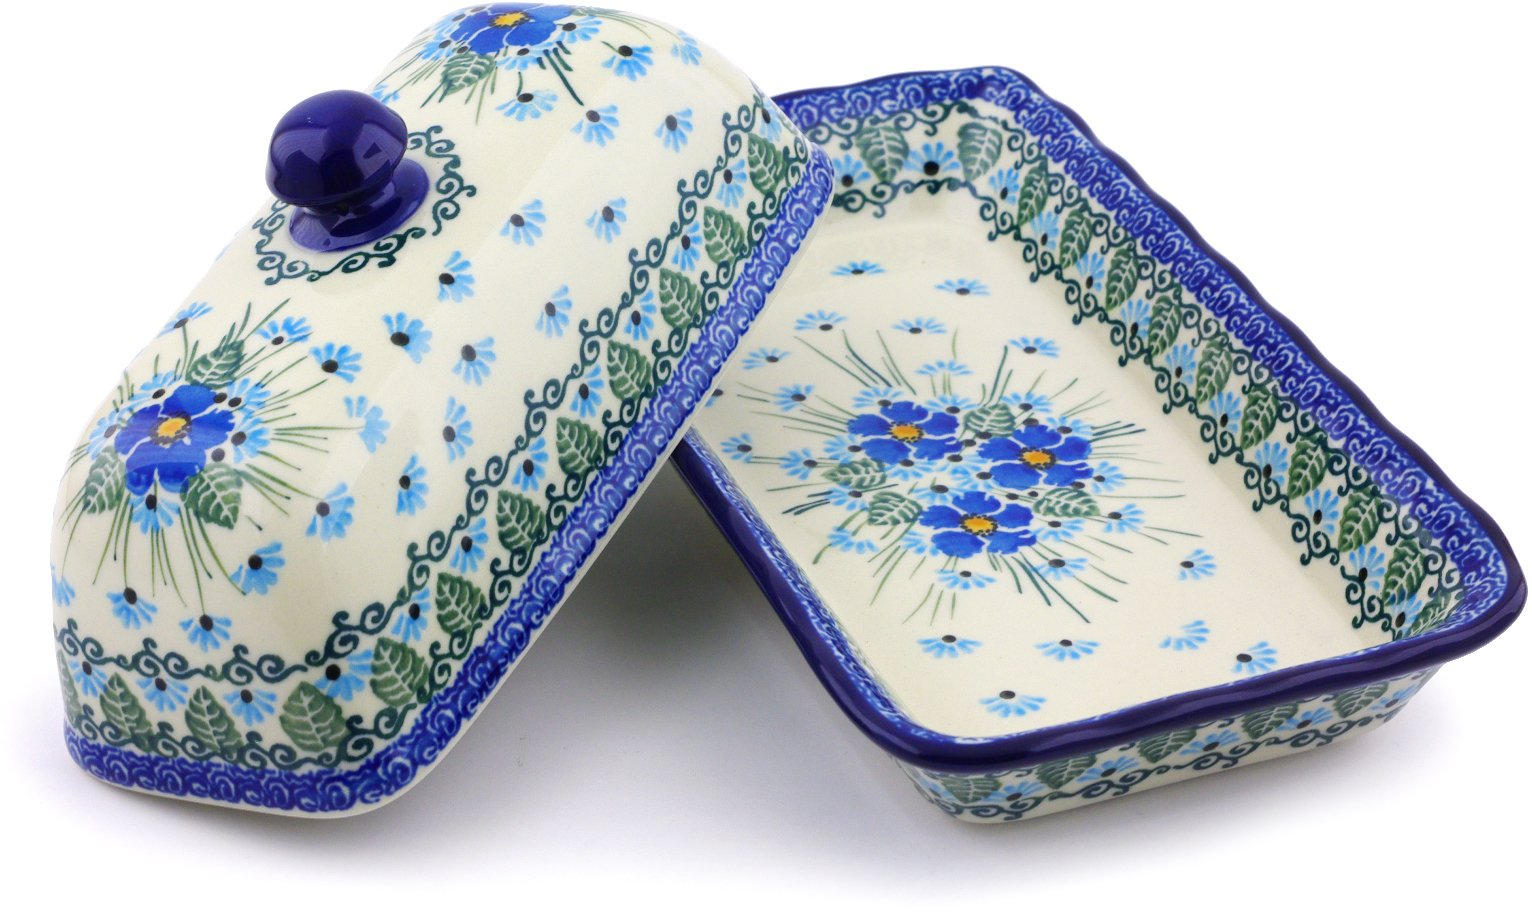 Polish Pottery Butter Dish 9-inch made by Ceramika Artystyczna (Forget Me Not Theme)